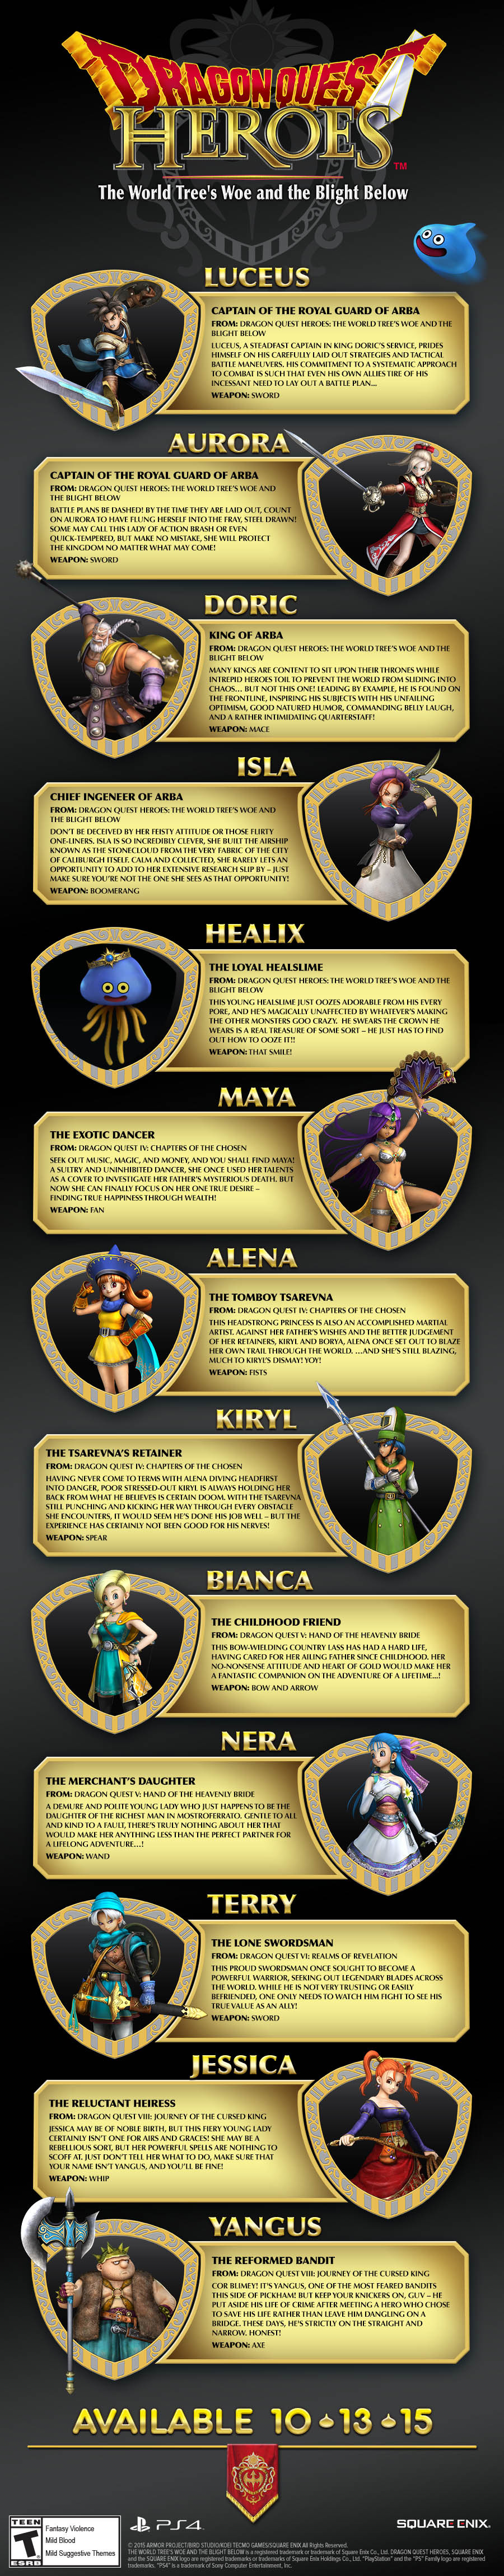 Dragon Quest Heroes personajes